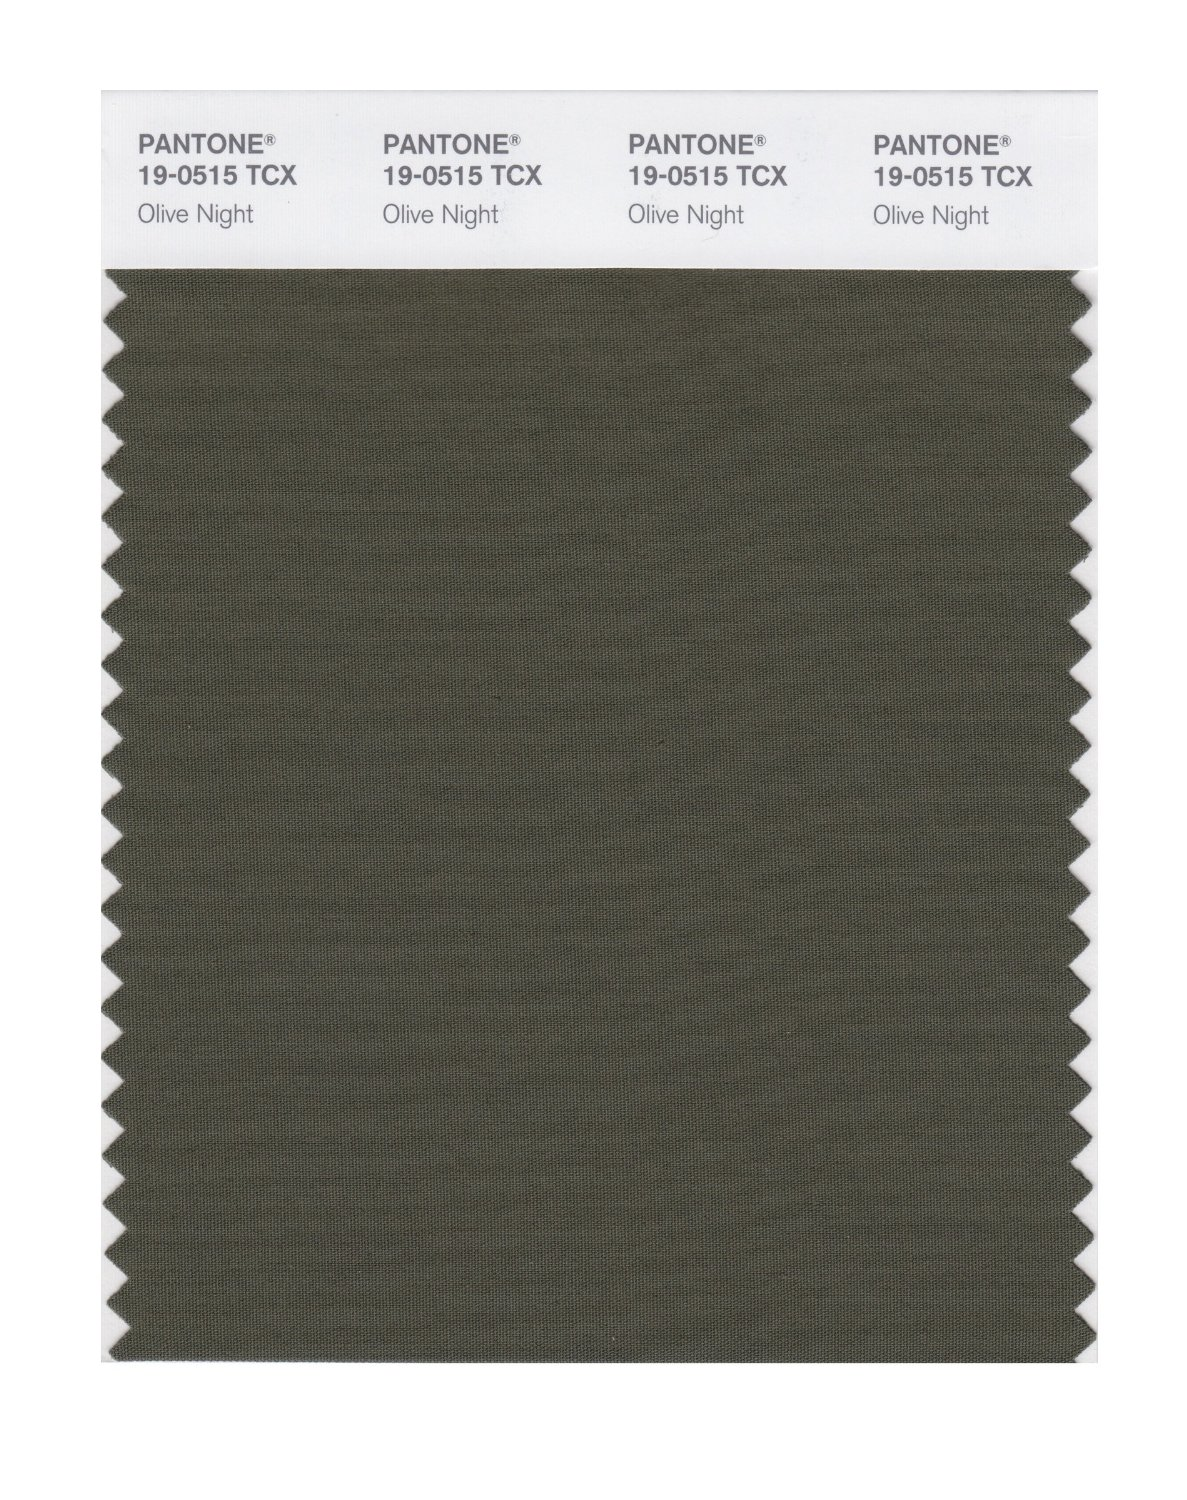 Pantone Smart Swatch 19-0515 Olive Night